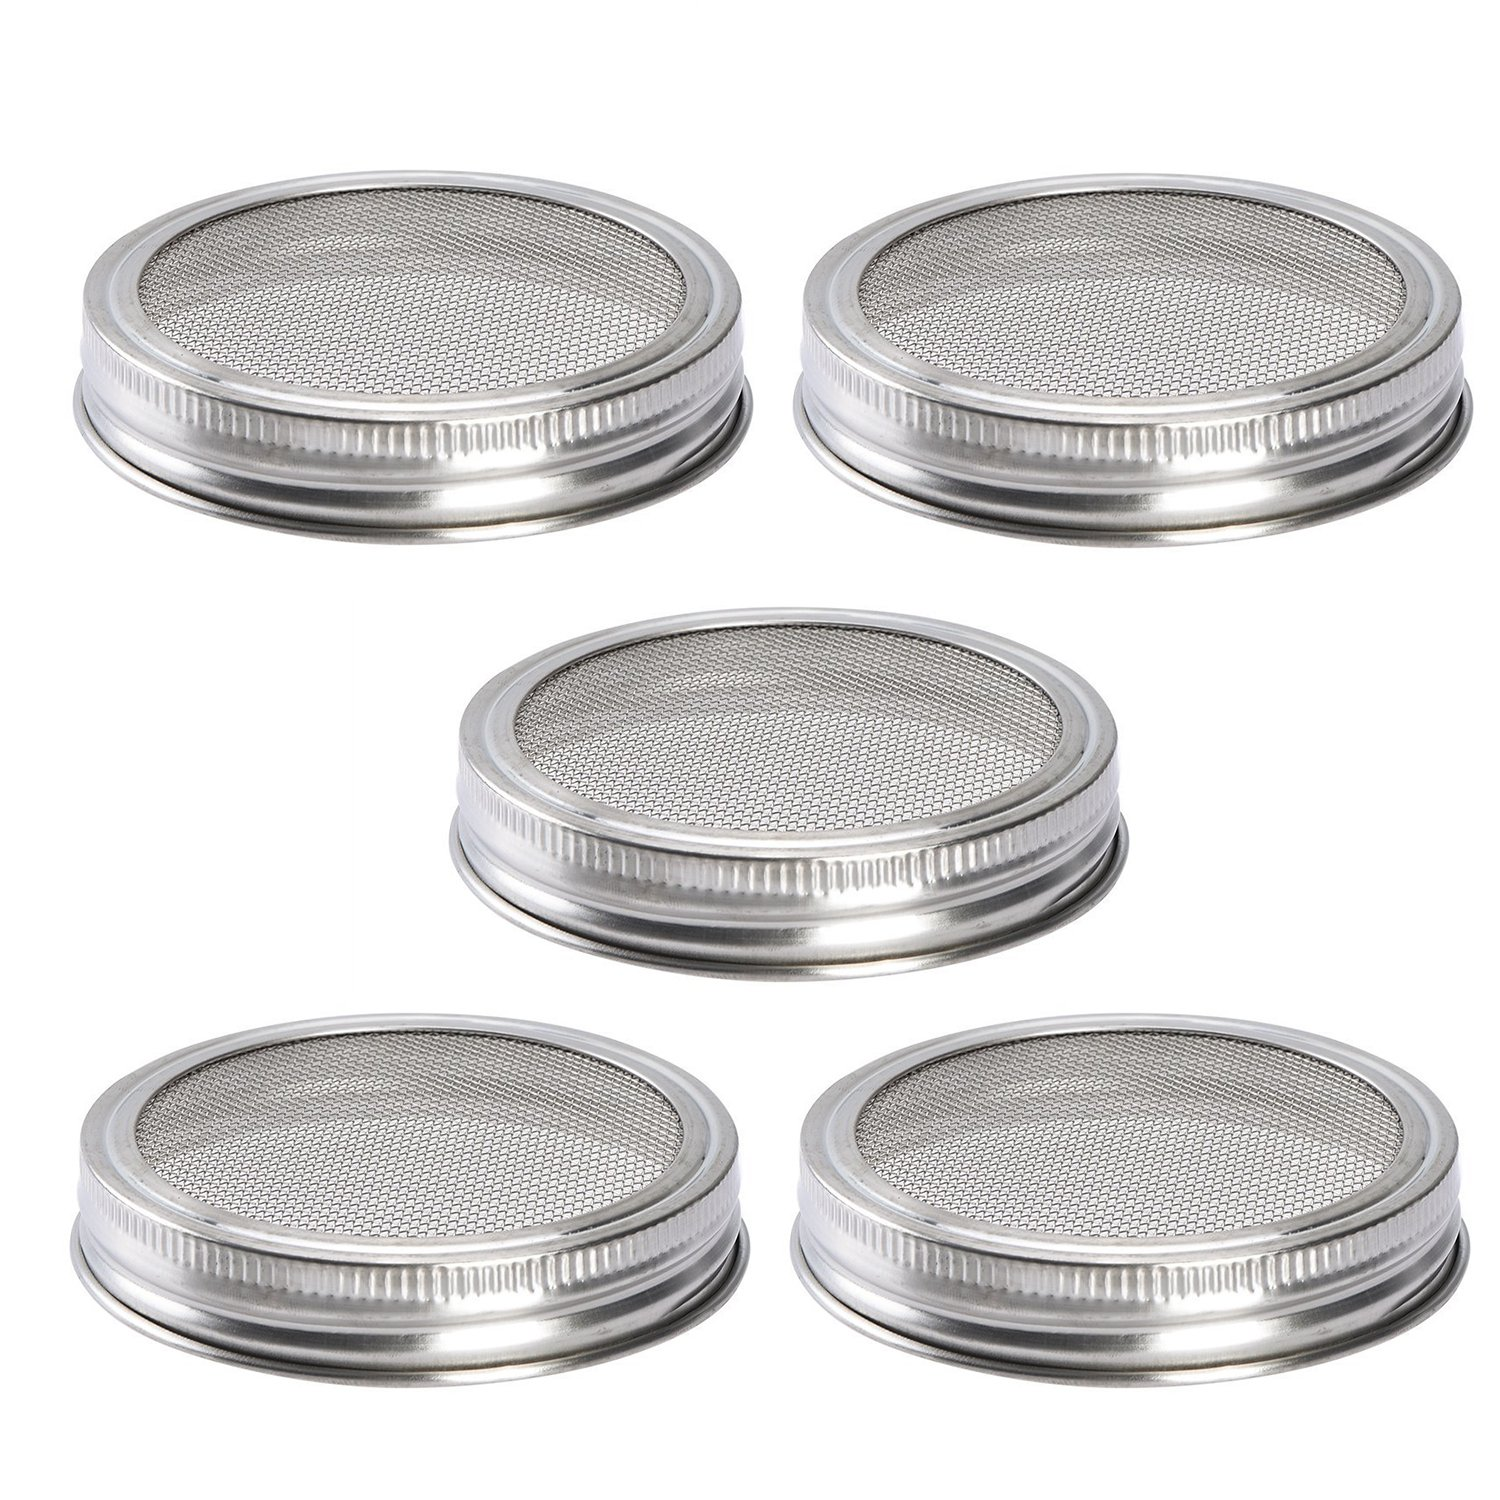 Sprouting Lids Kit Stainless Steel Screen Lid for Wide Mouth Mason Jars Canning Jars - Organic Sprout Seeds Strainer (Pack of 5)